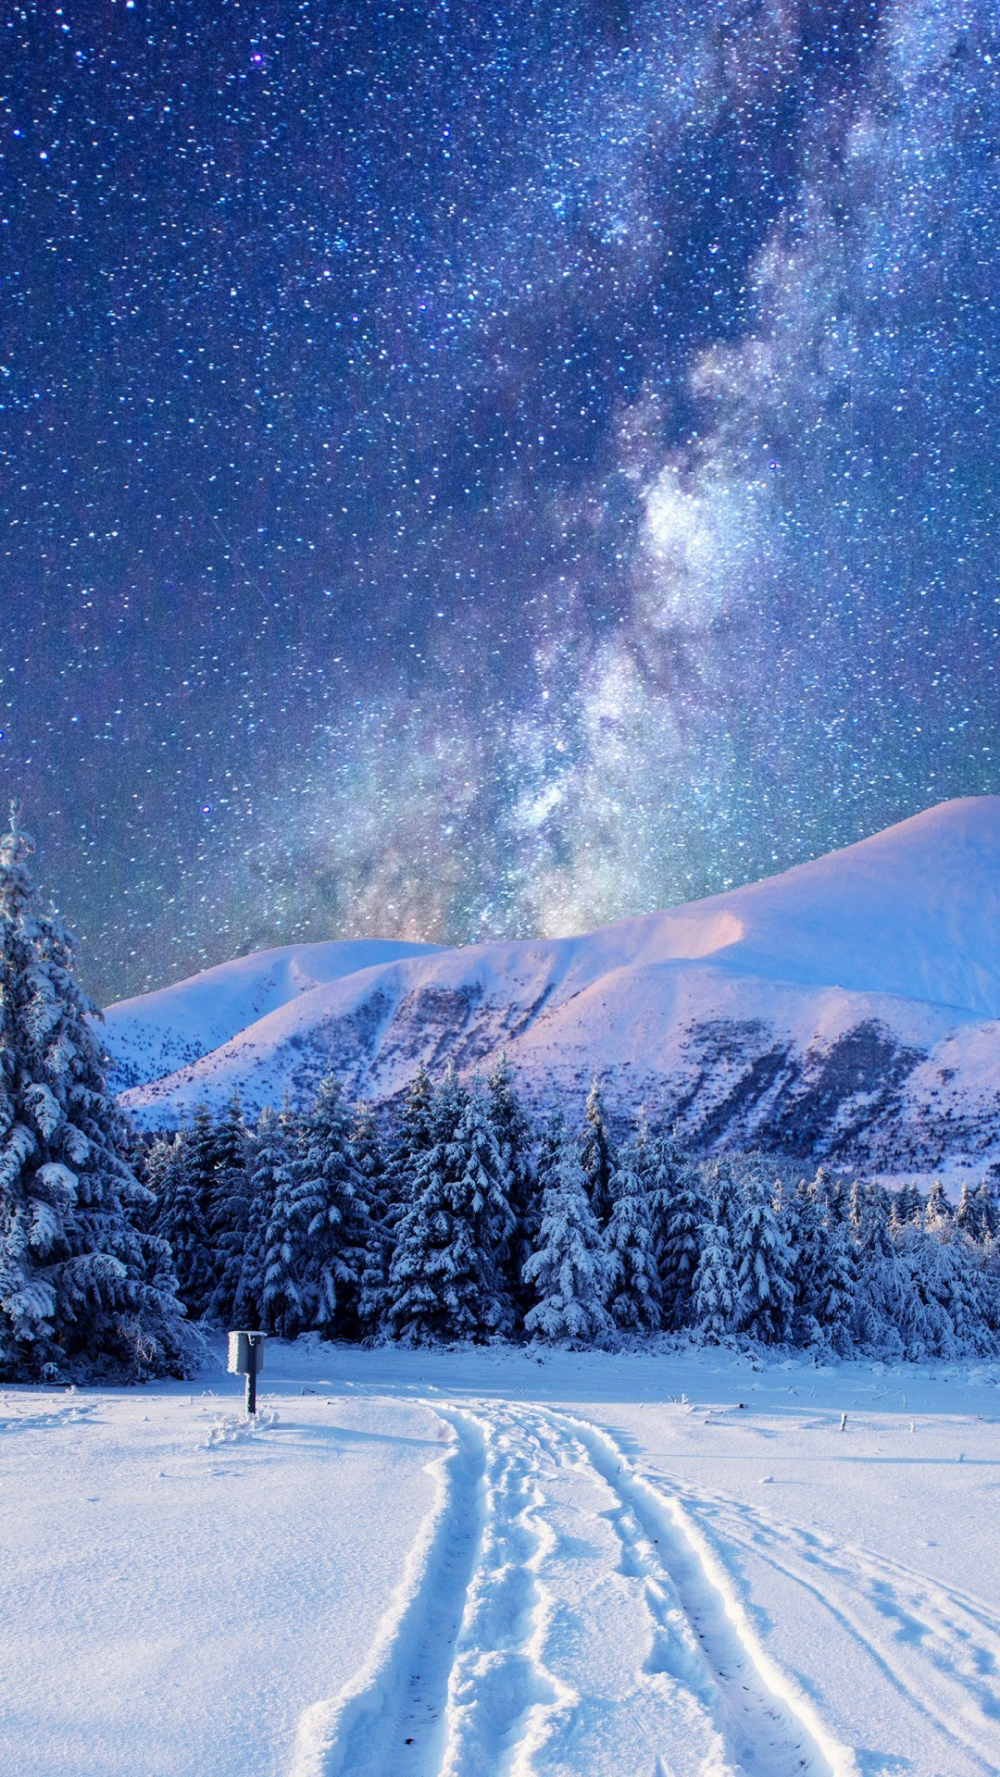 Best Winter Wallpapers For Iphone In 2021 Igeeksblog Iphone Wallpaper Winter Winter Wallpaper Hd Winter Landscape